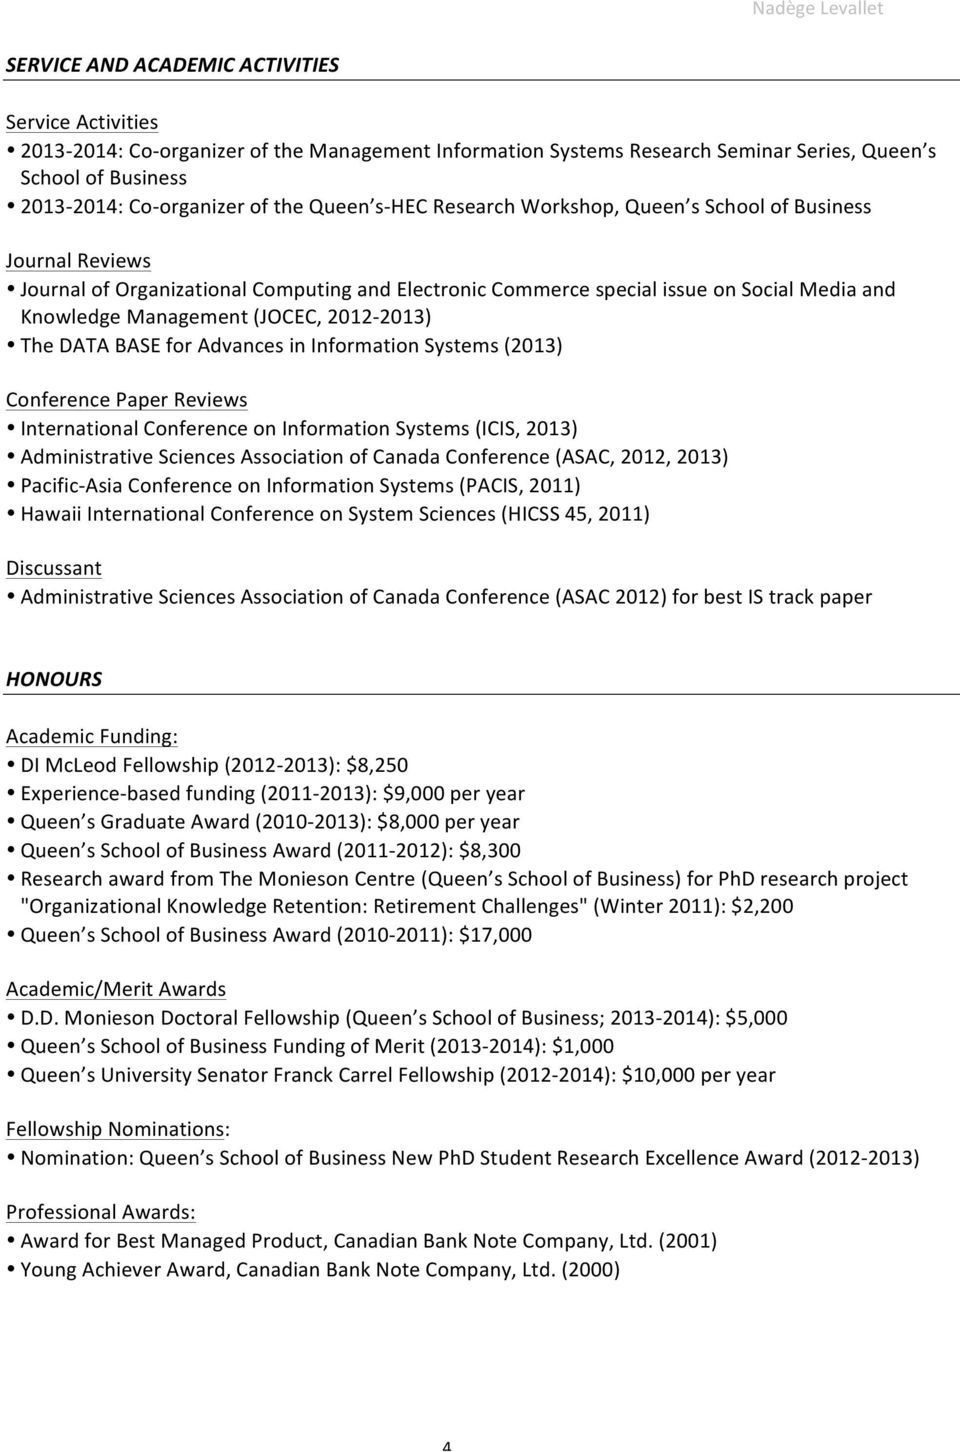 2012-2013) The DATA BASE for Advances in Information Systems (2013) Conference Paper Reviews International Conference on Information Systems (ICIS, 2013) Administrative Sciences Association of Canada